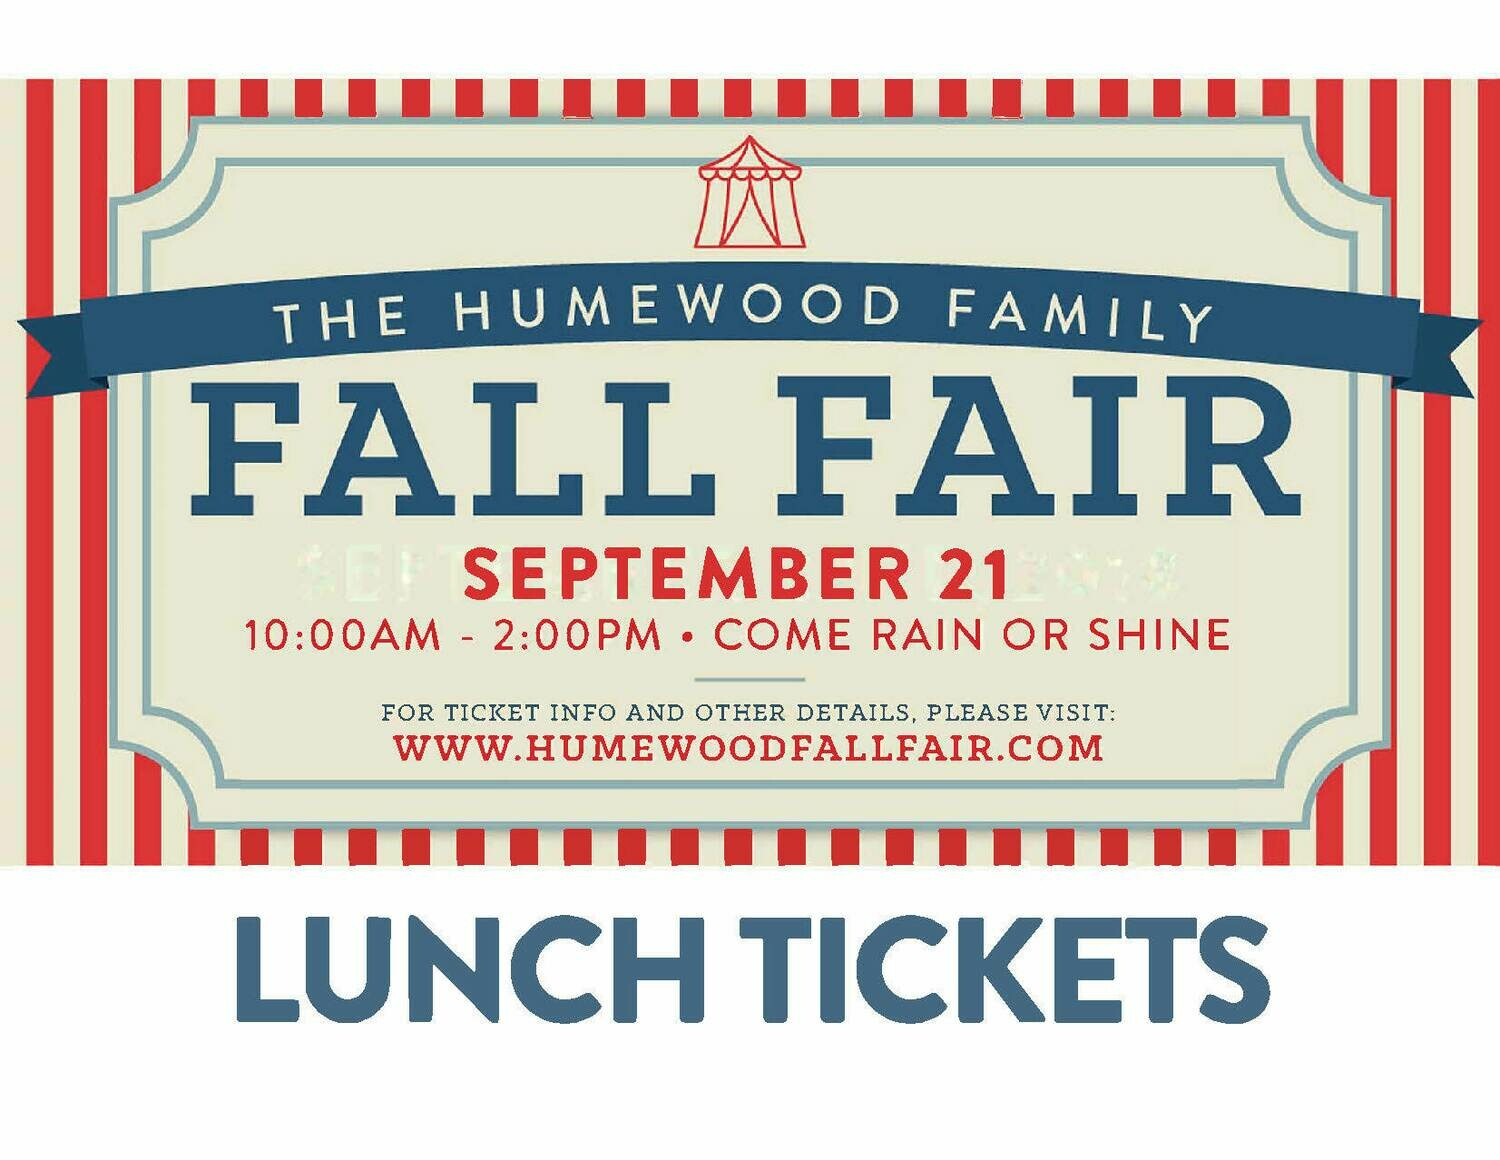 Humewood Fall Fair: Lunch ticket